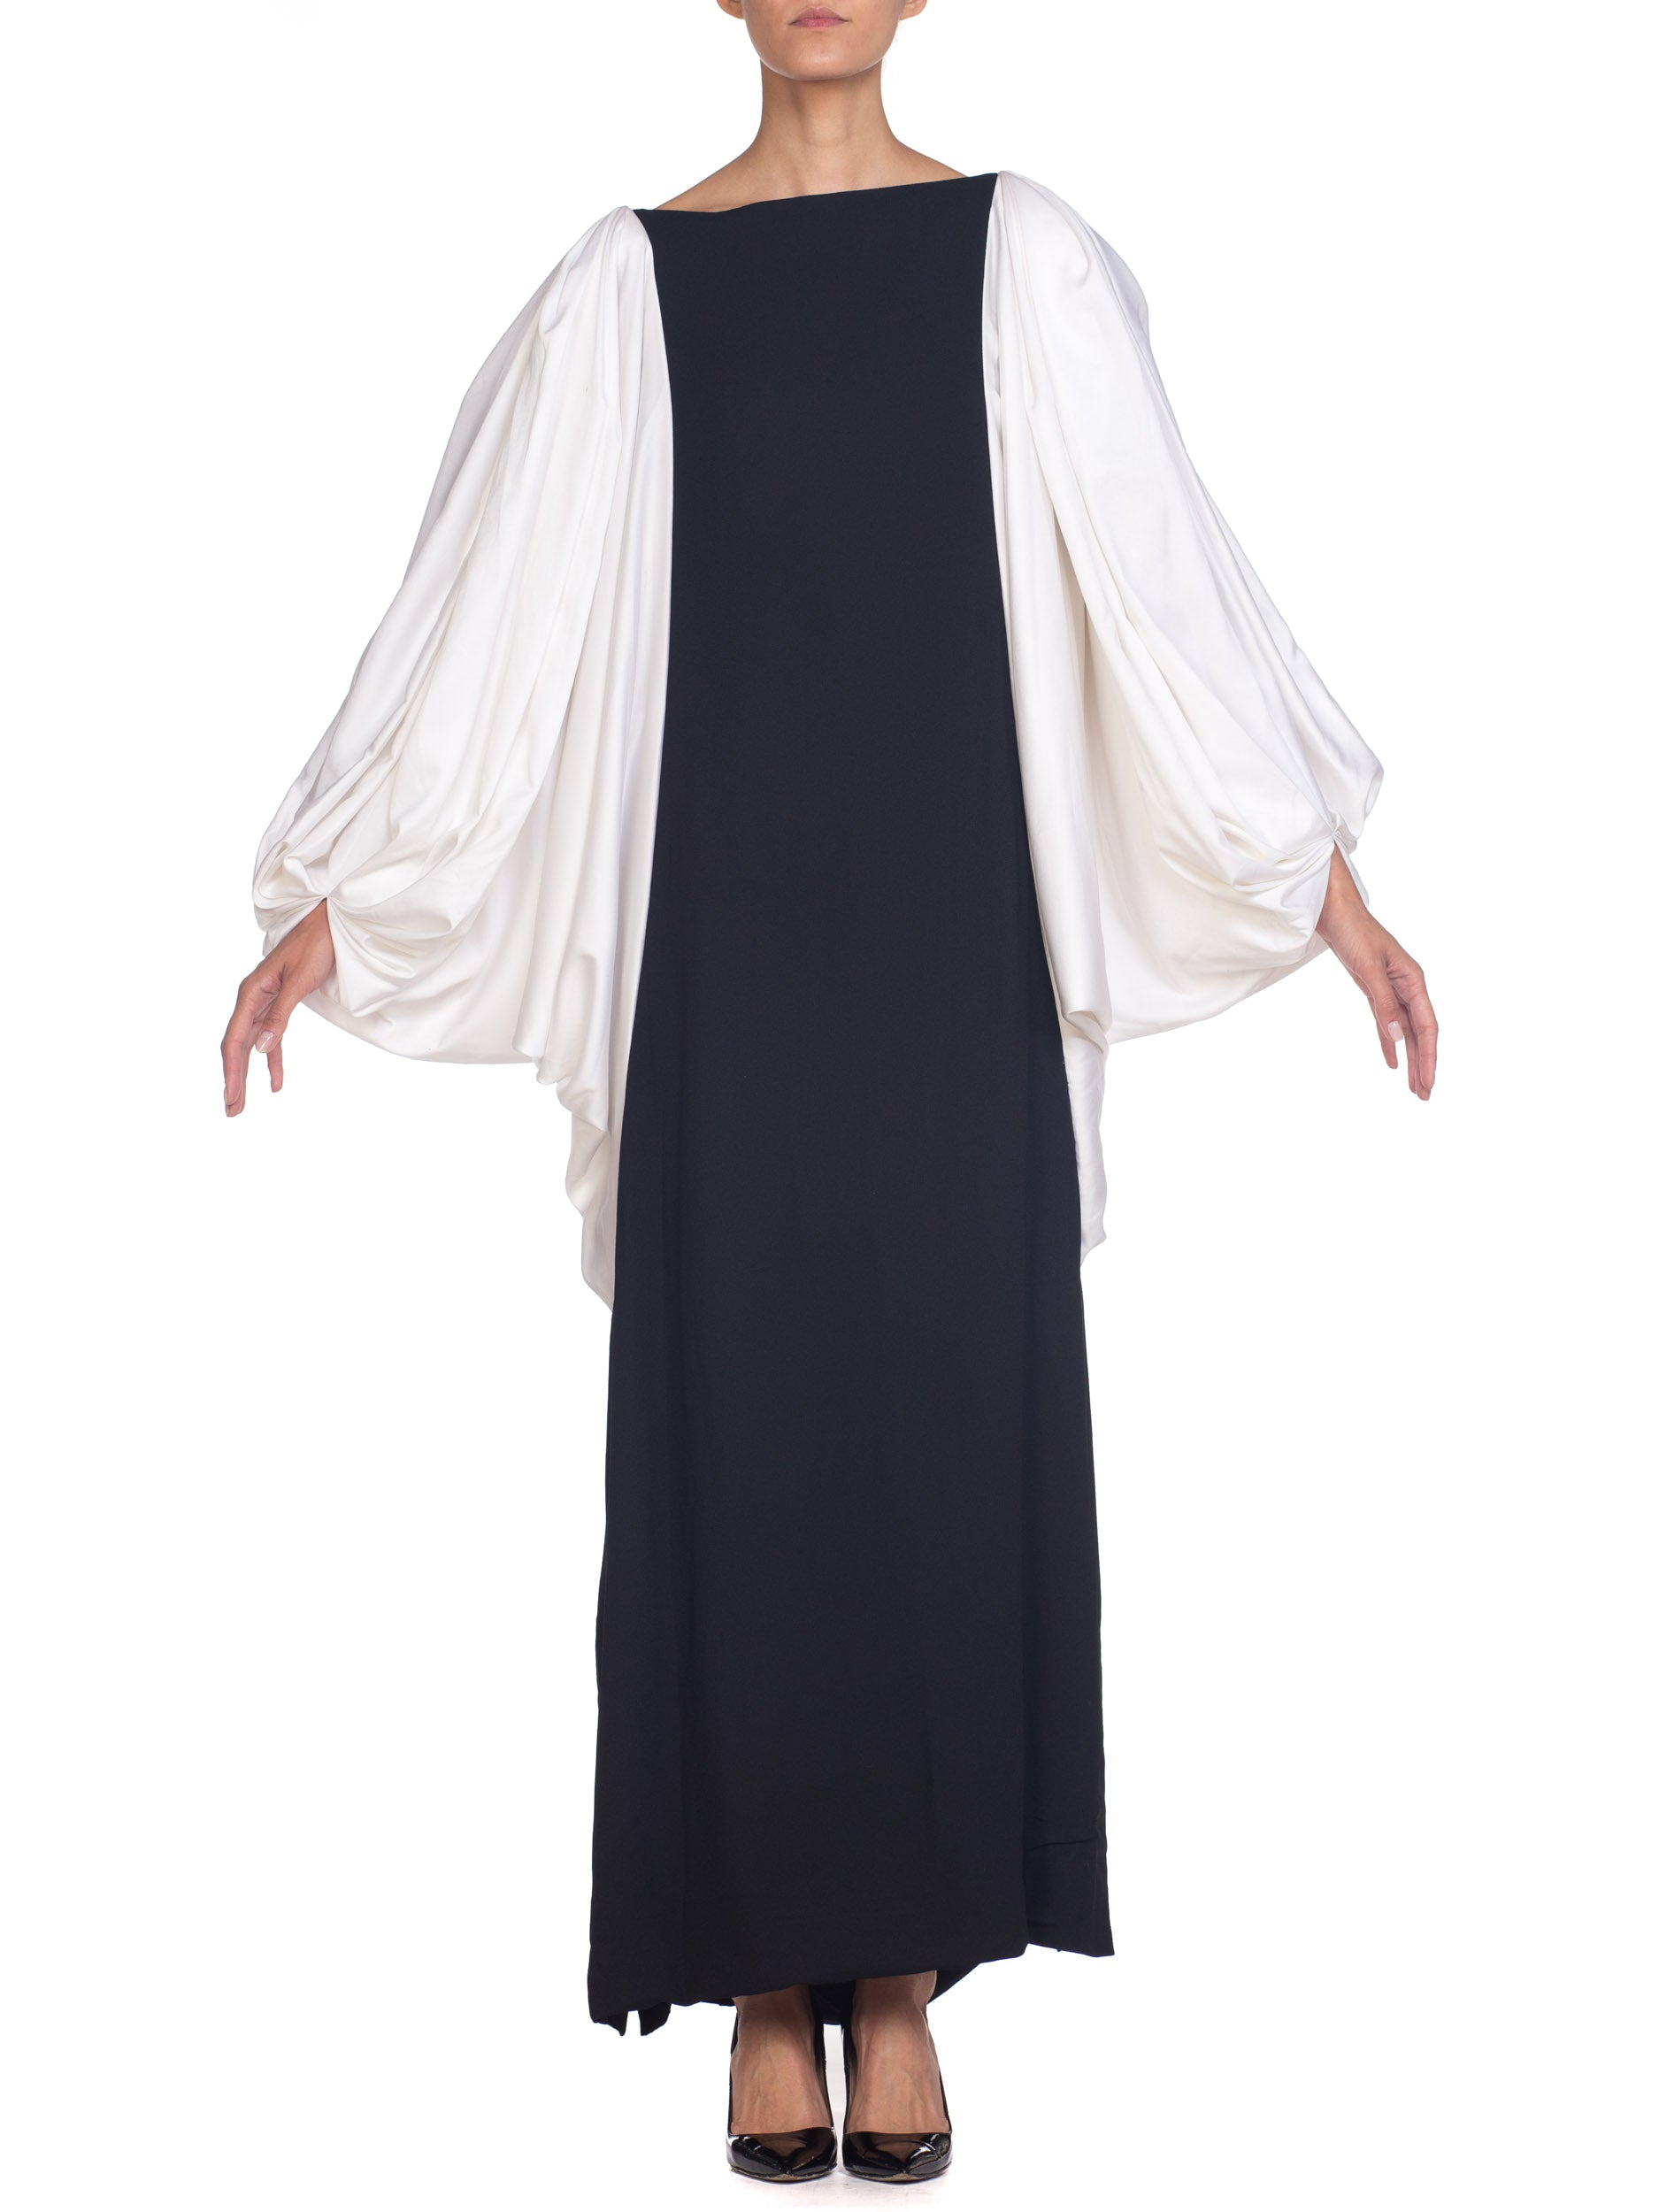 1980s Richilene Giant Baloon Sleeve Gown with Slit